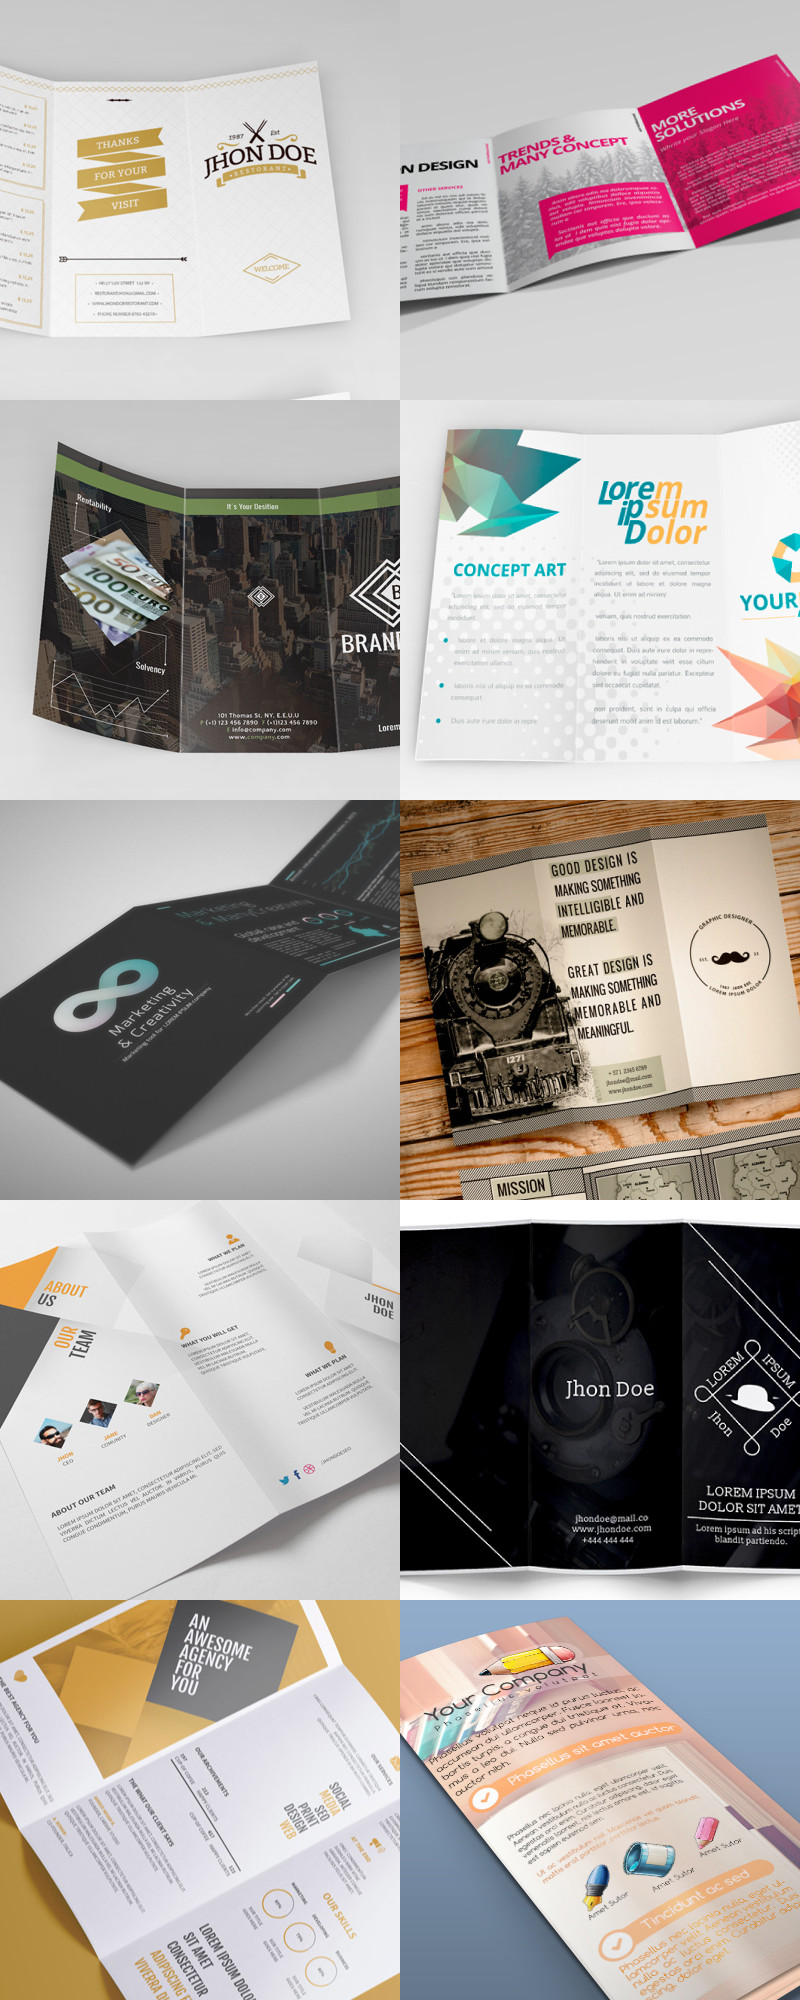 Tri Fold Brochure Template Illustrator 25 Editable Illustrator Tri Fold Brochure Templates